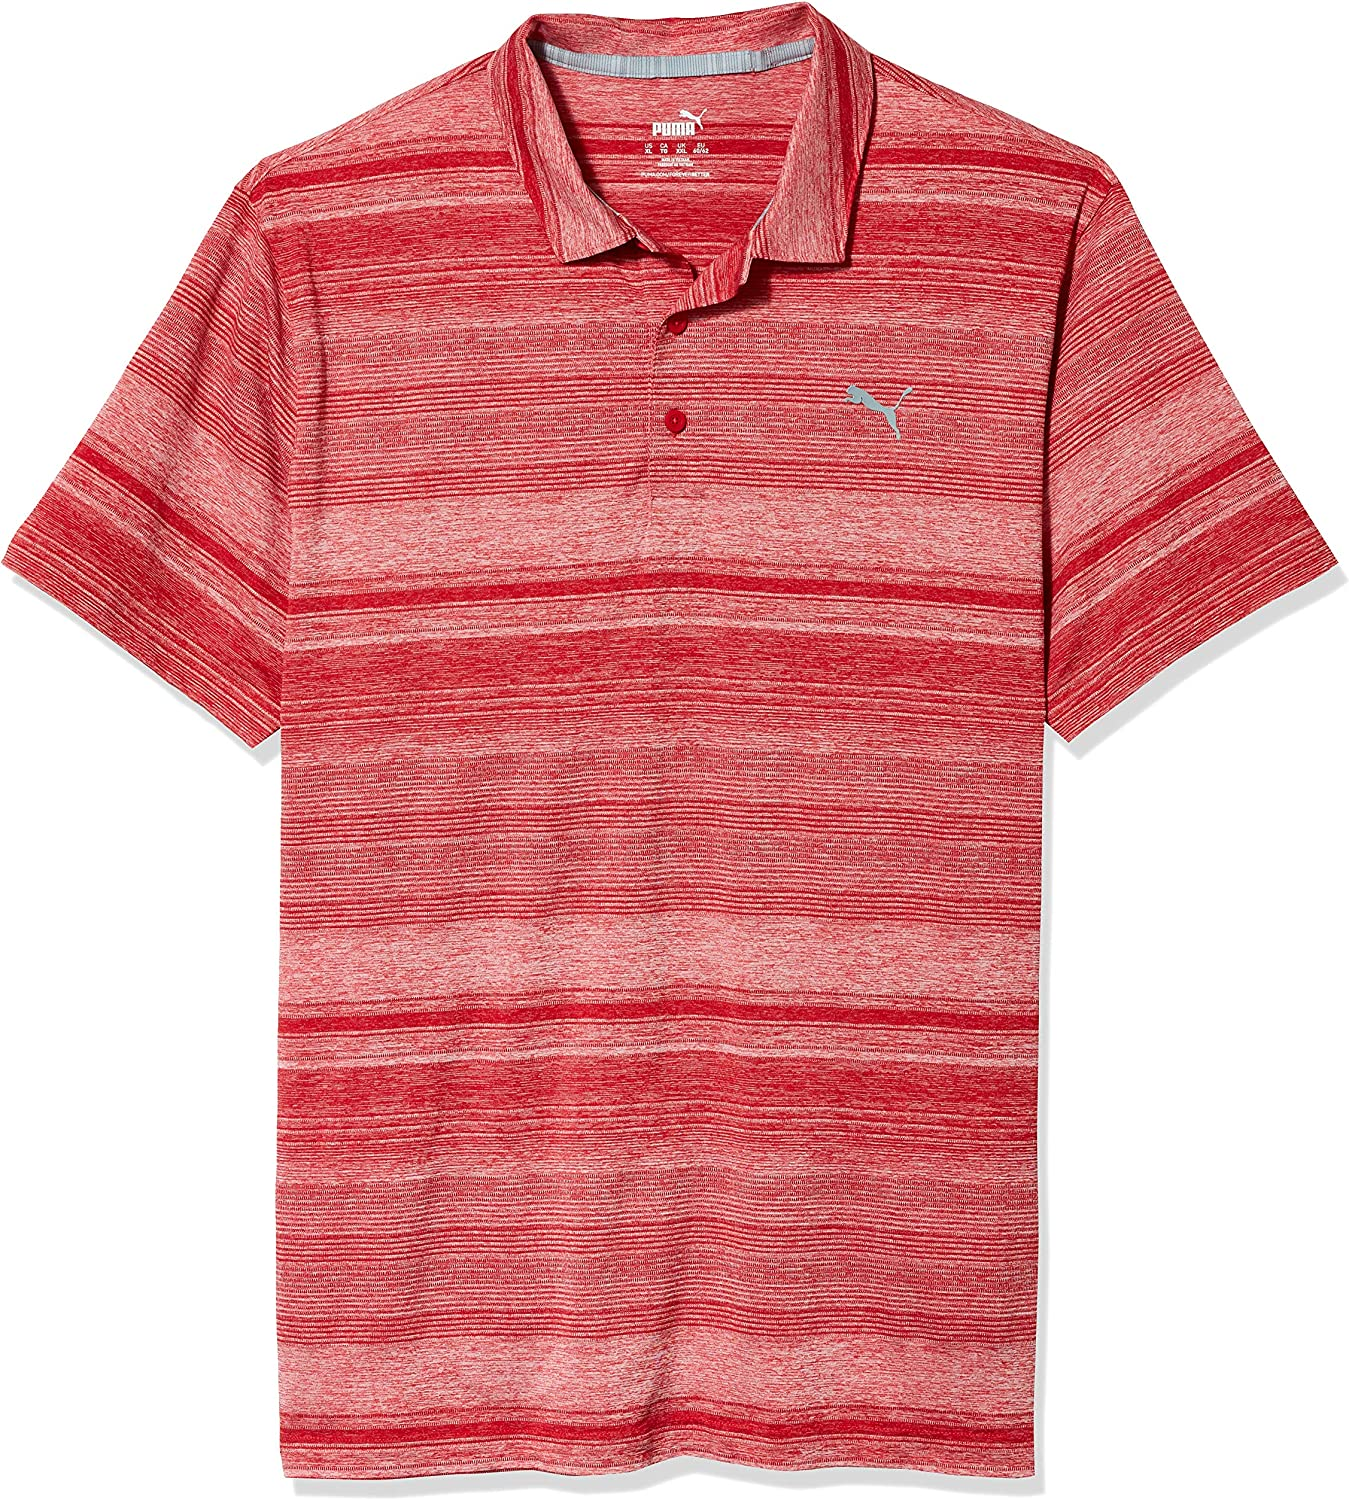 Luxury goods PUMA Golf 2020 Men's Stripe Variegated Gifts Polo